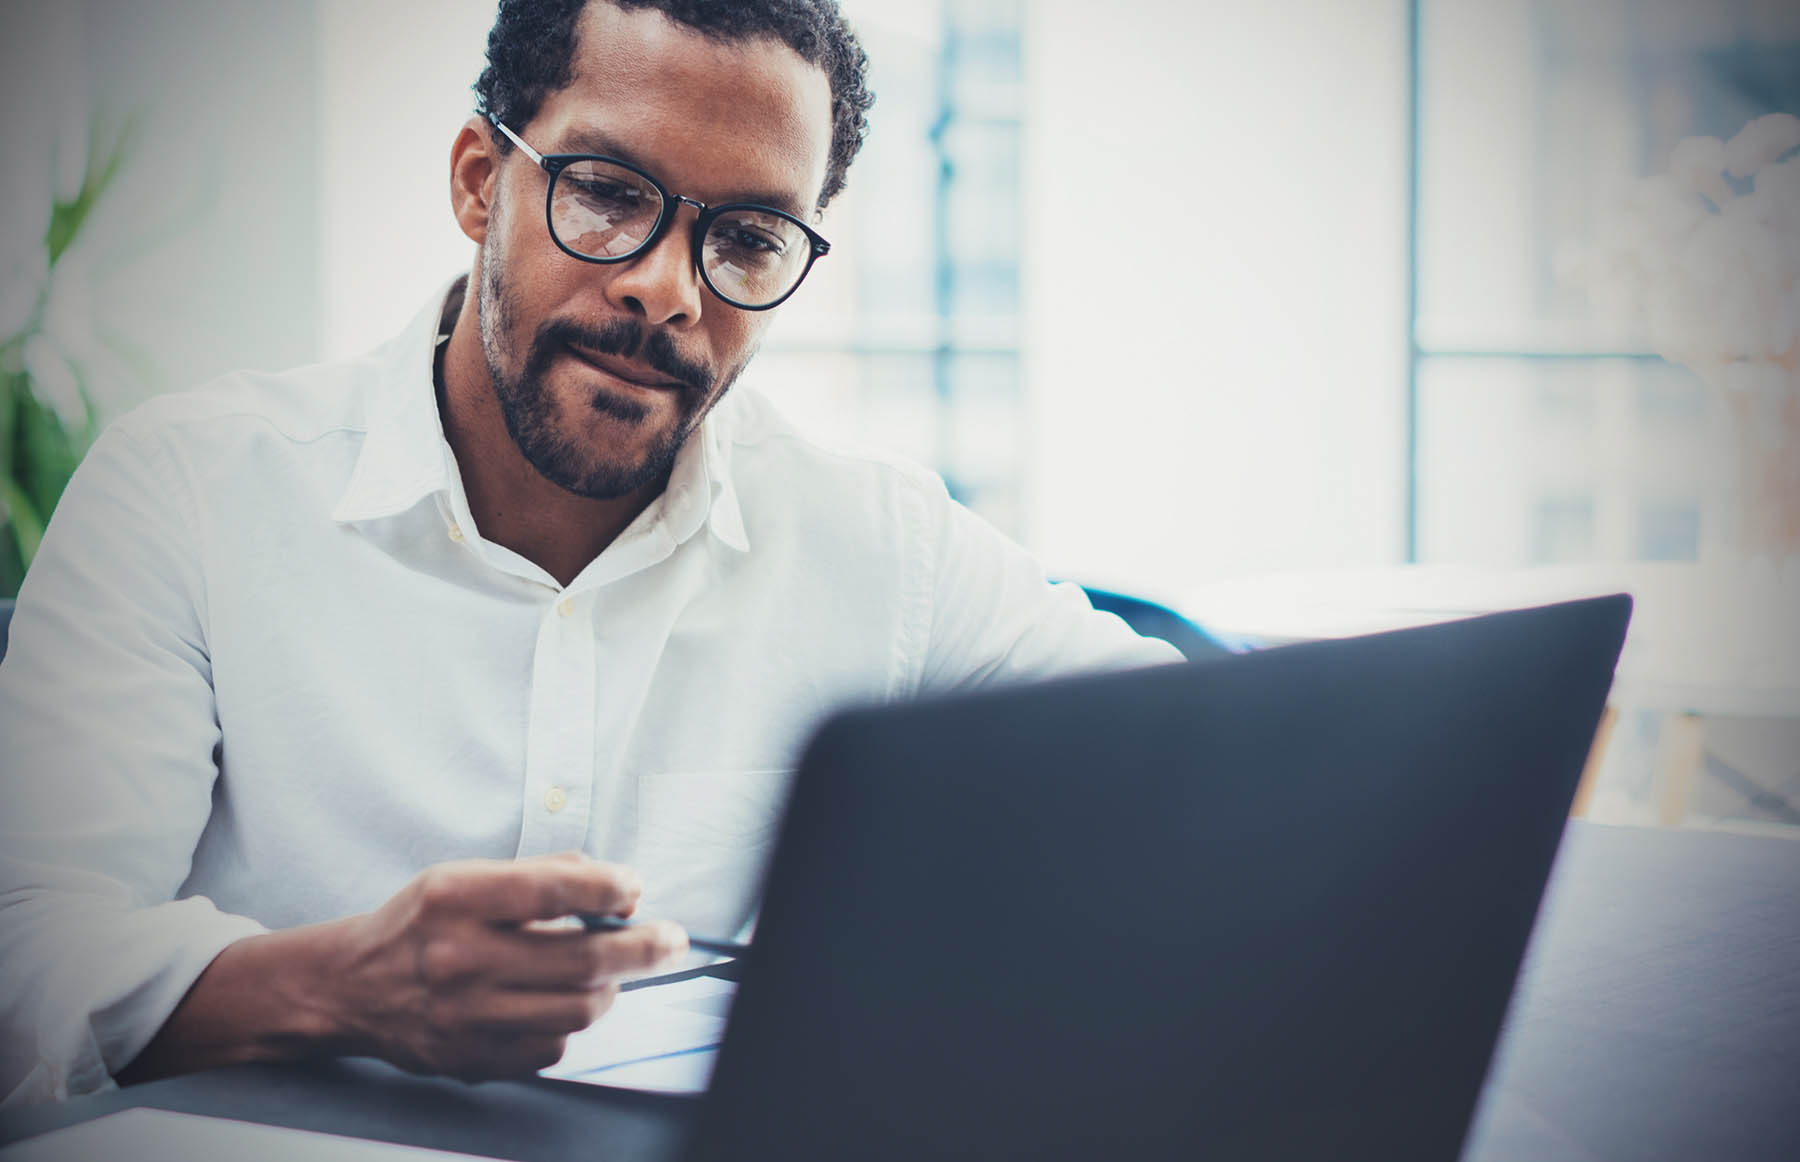 Man managing business on computer